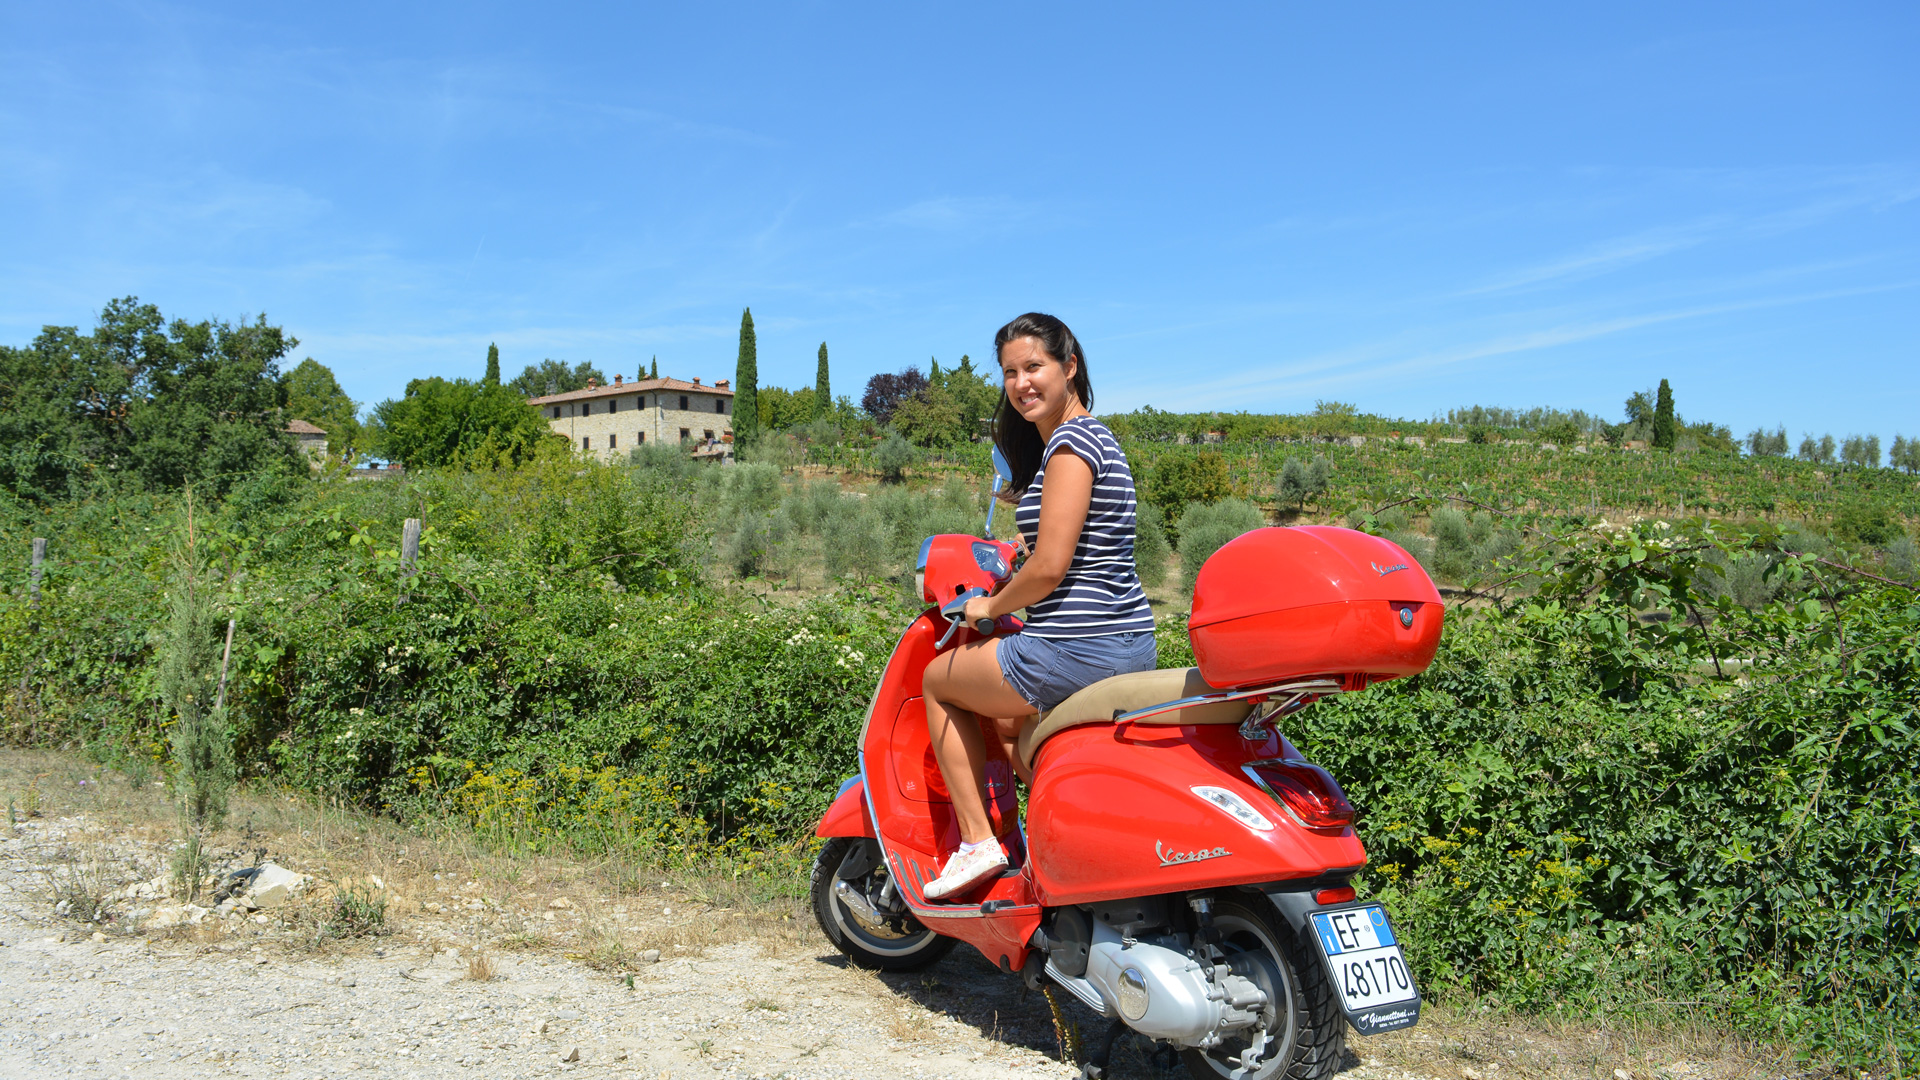 Vespa Countryside